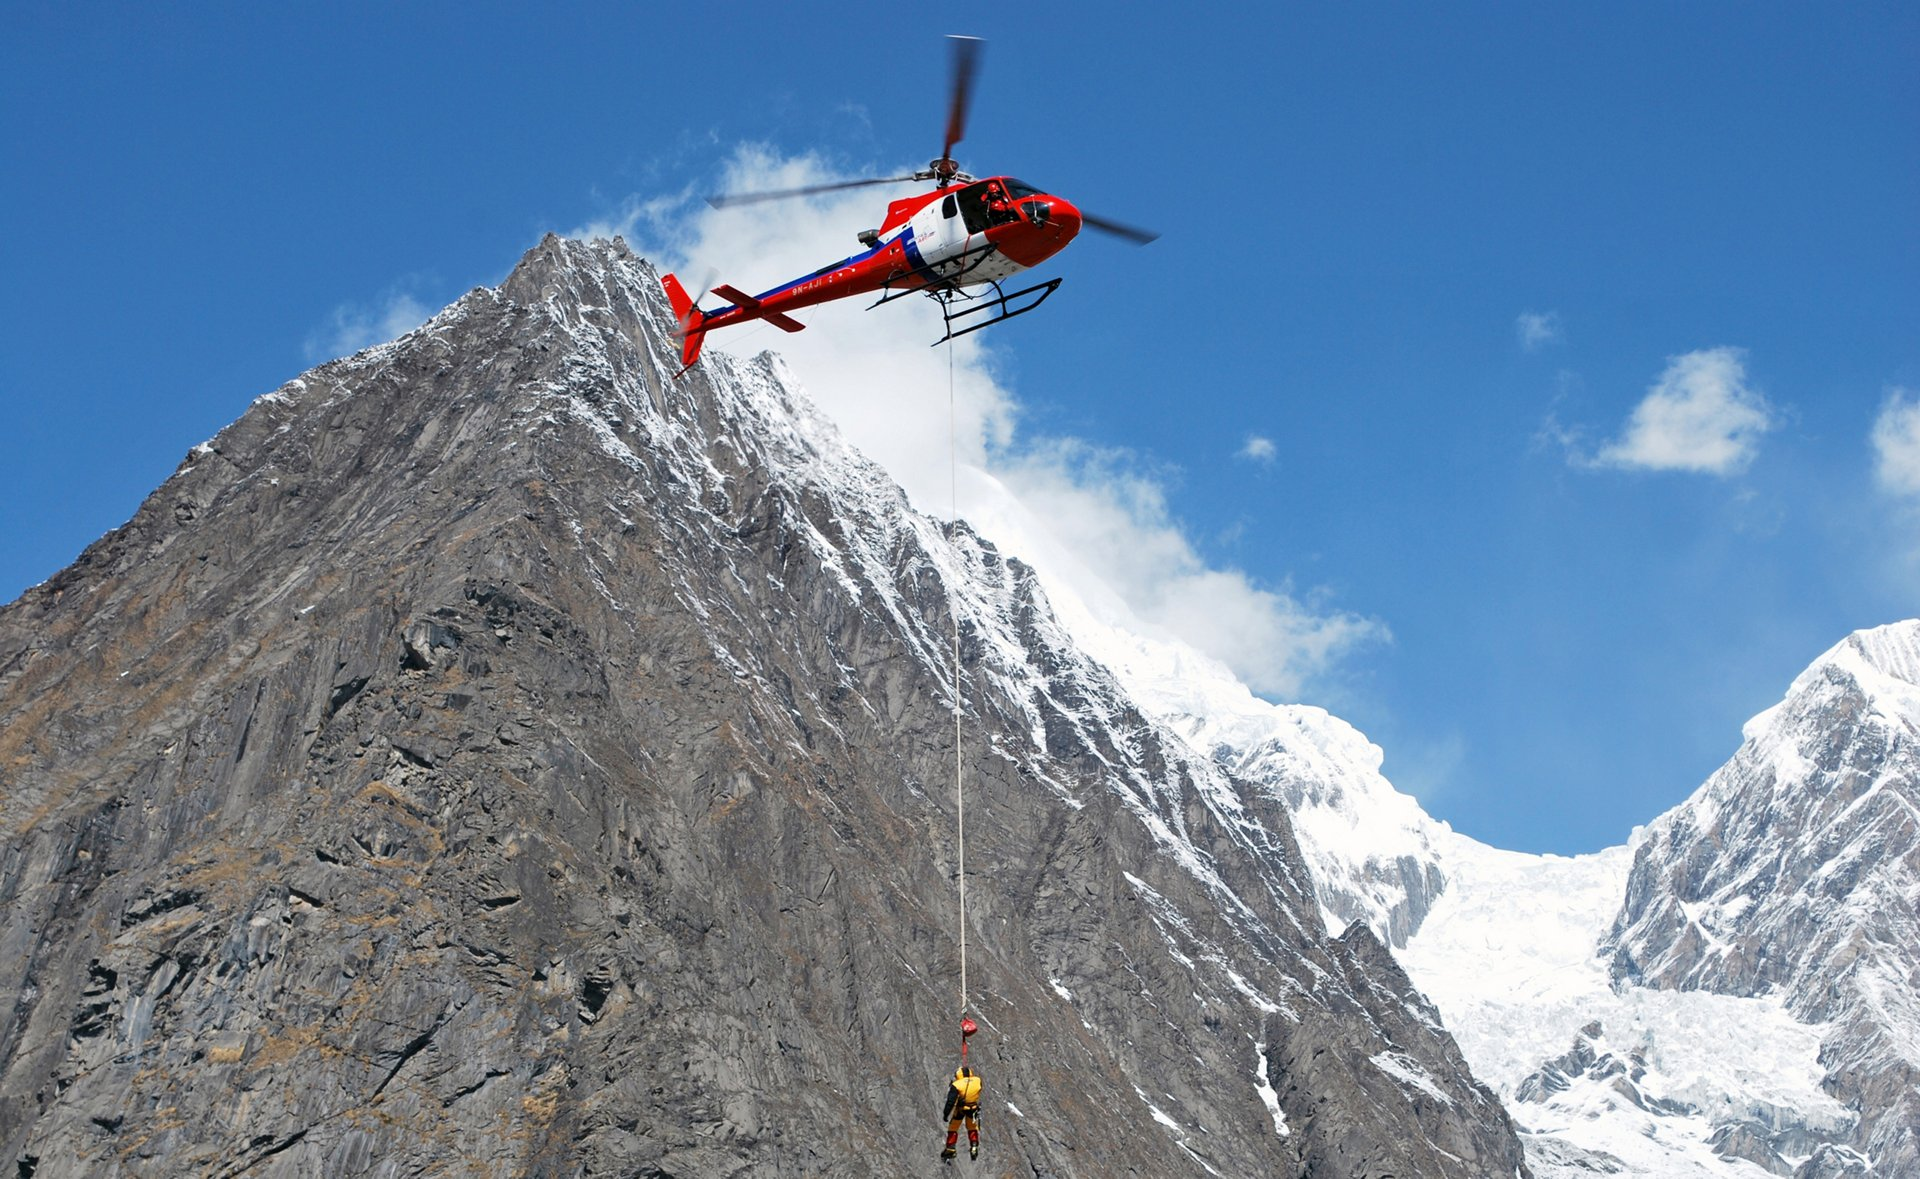 Rescue missions in the Himalayas